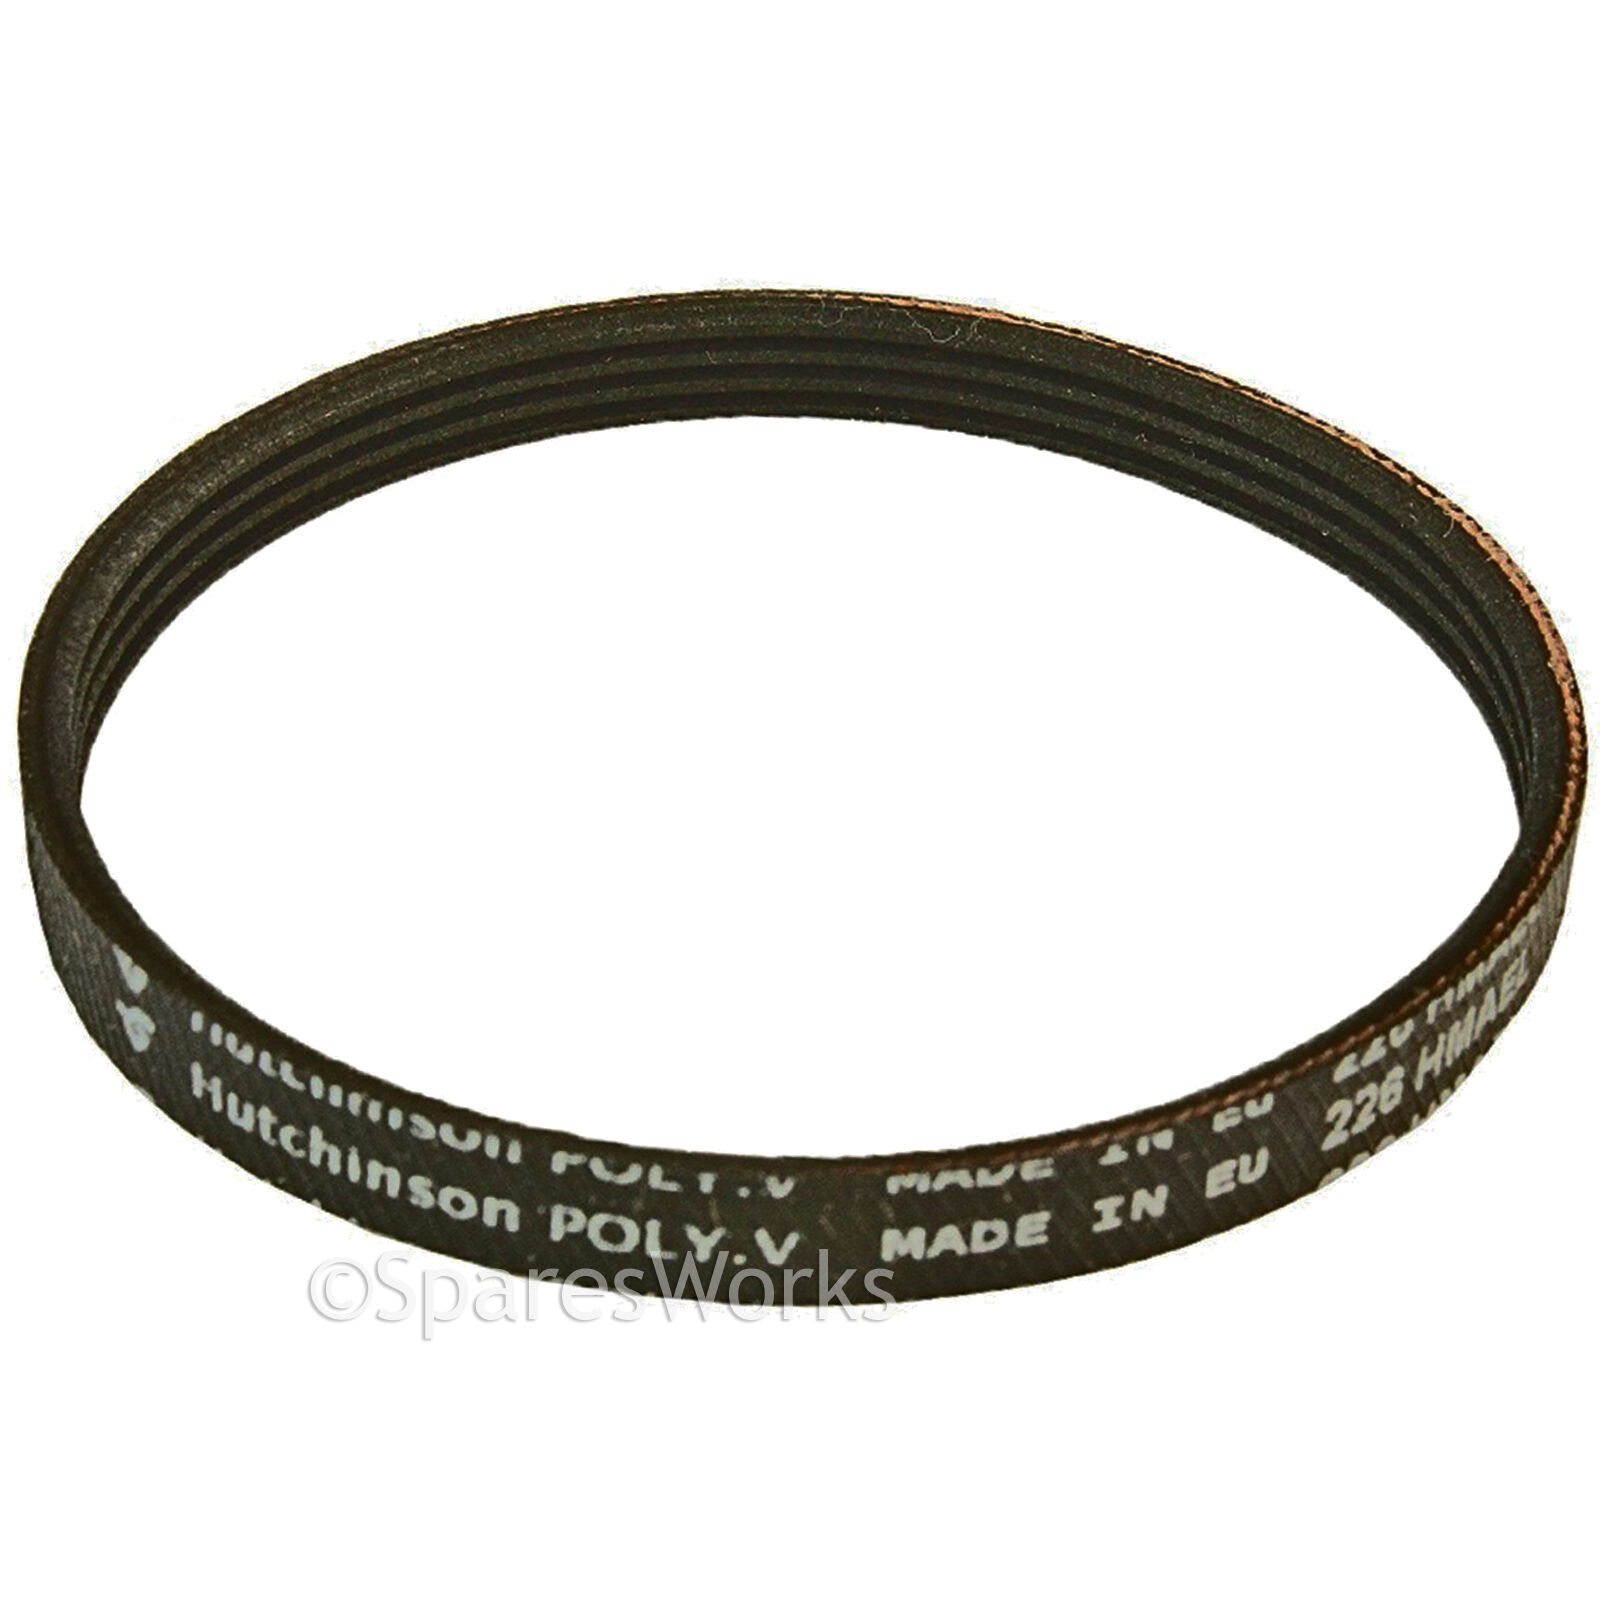 Beko 4phe226 poly v extra strong tumble dryer small pulley belt genuine drvt61w - Tumble dryer for small space pict ...